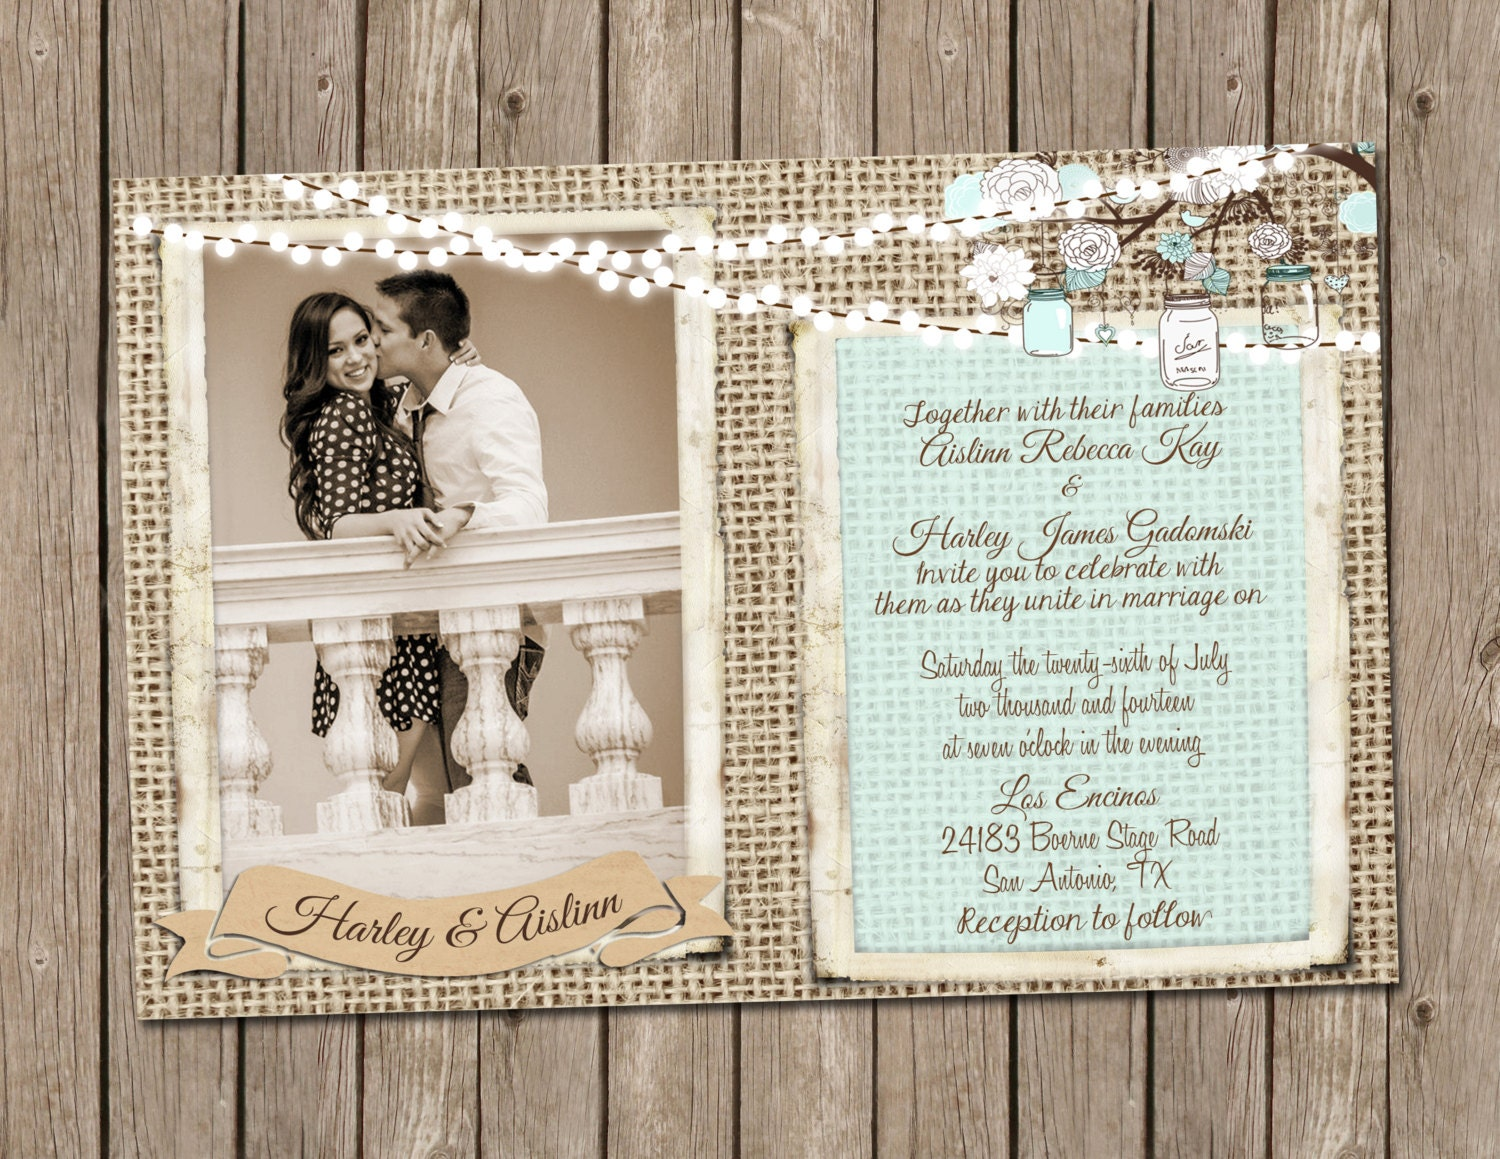 Wedding Invitations With Burlap: Rustic Wedding Invitation Over Burlap In Light Blue With